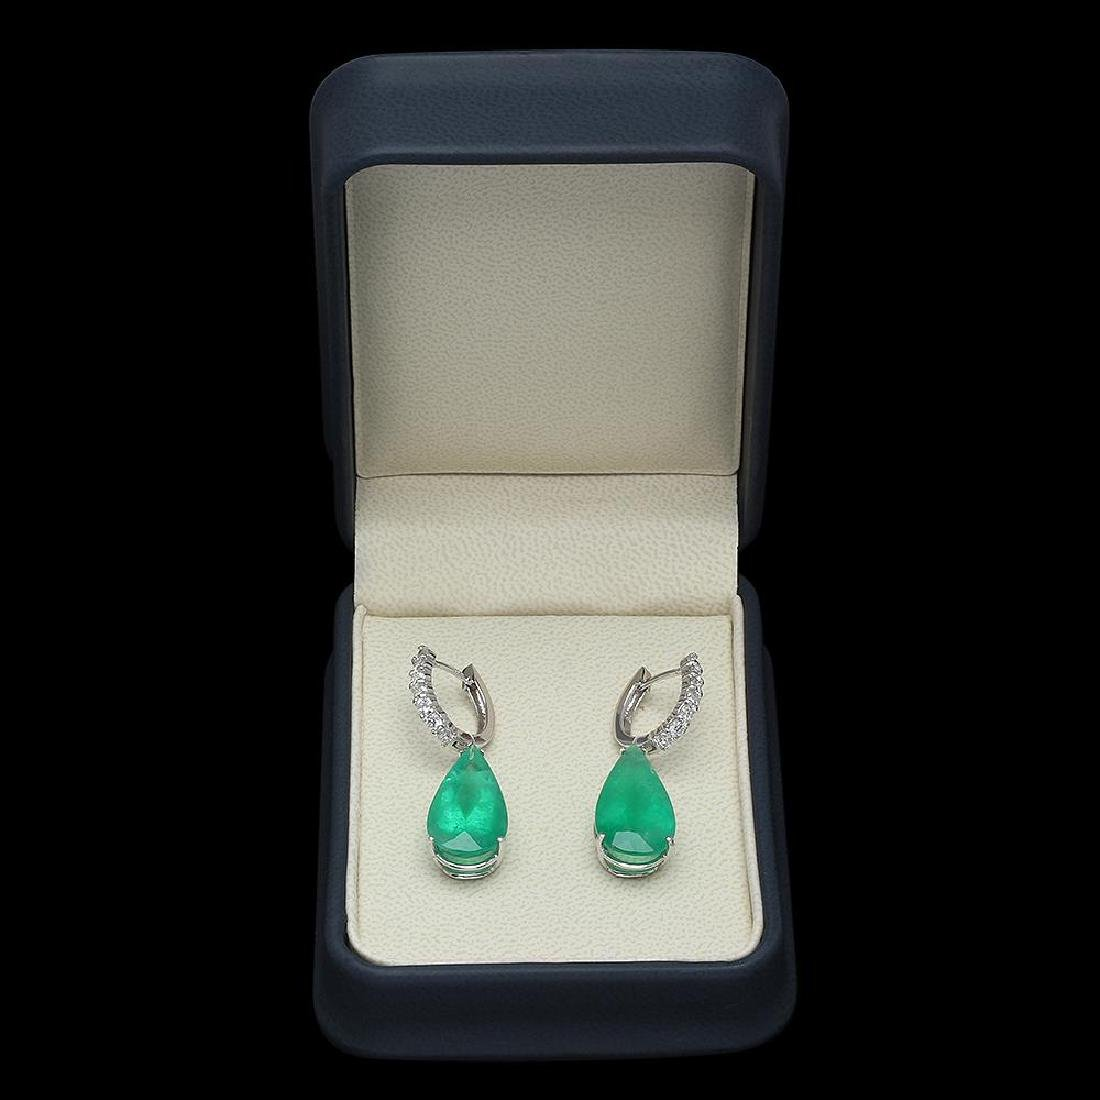 14K Gold 19.70ct Emerald 1.30ct Diamond Earrings - 3